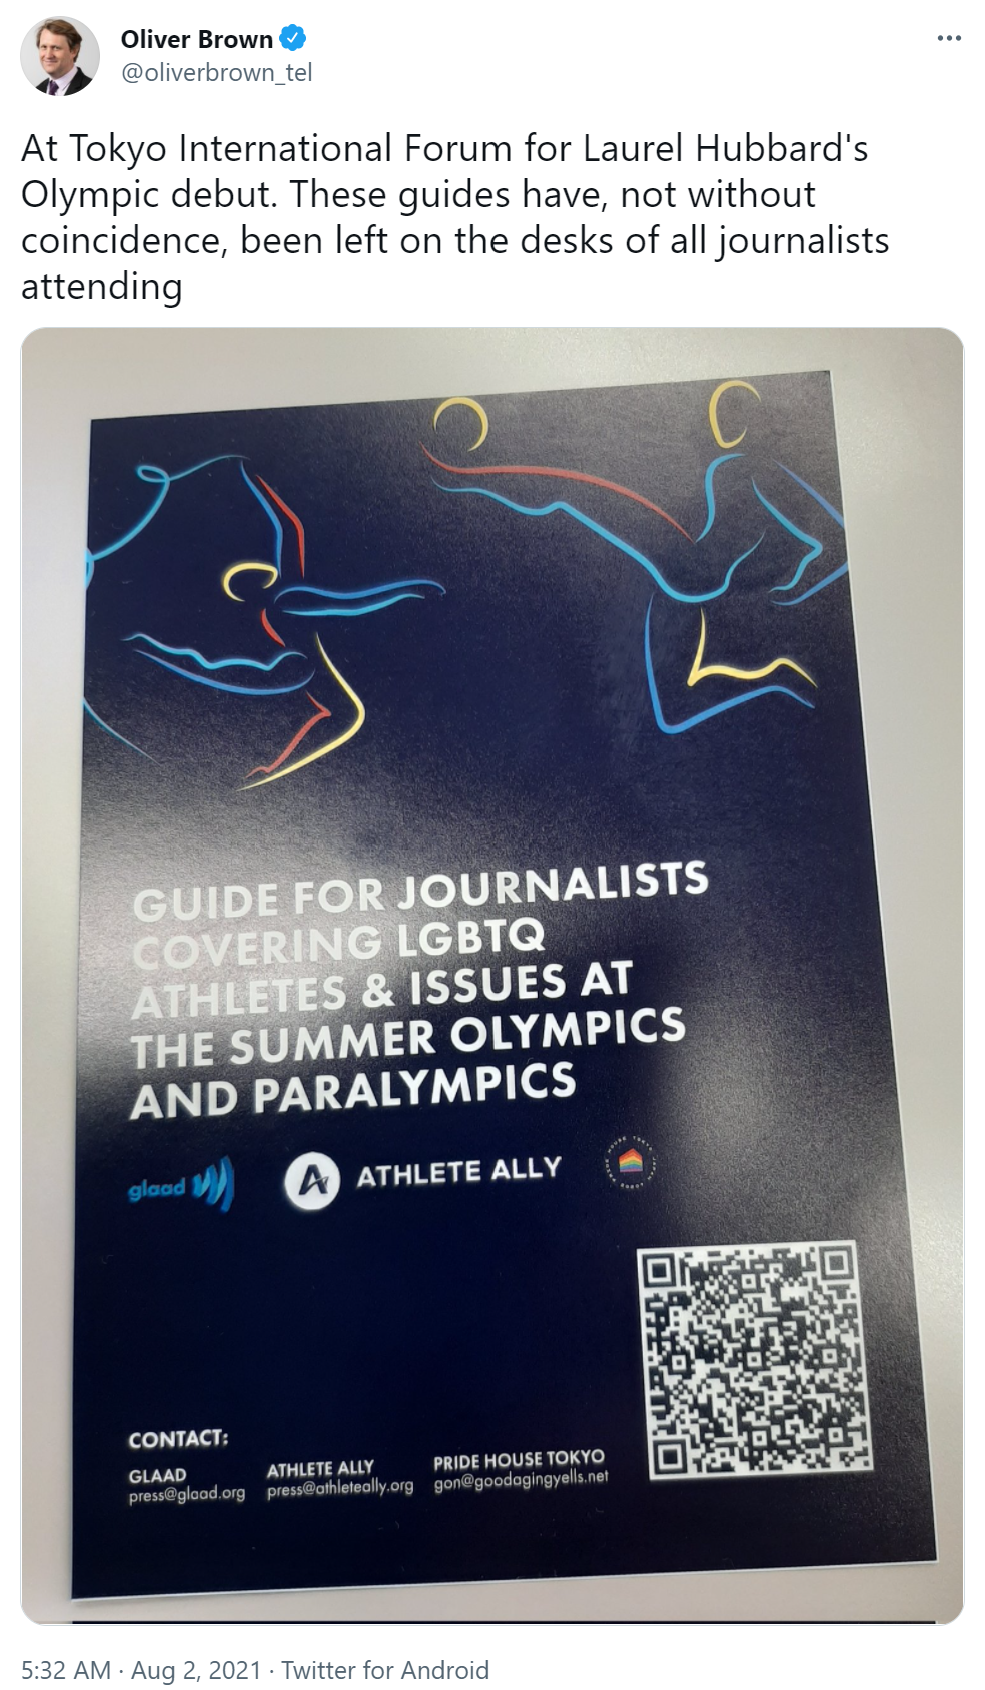 Tweet with photo of postcard for Olympic Guide